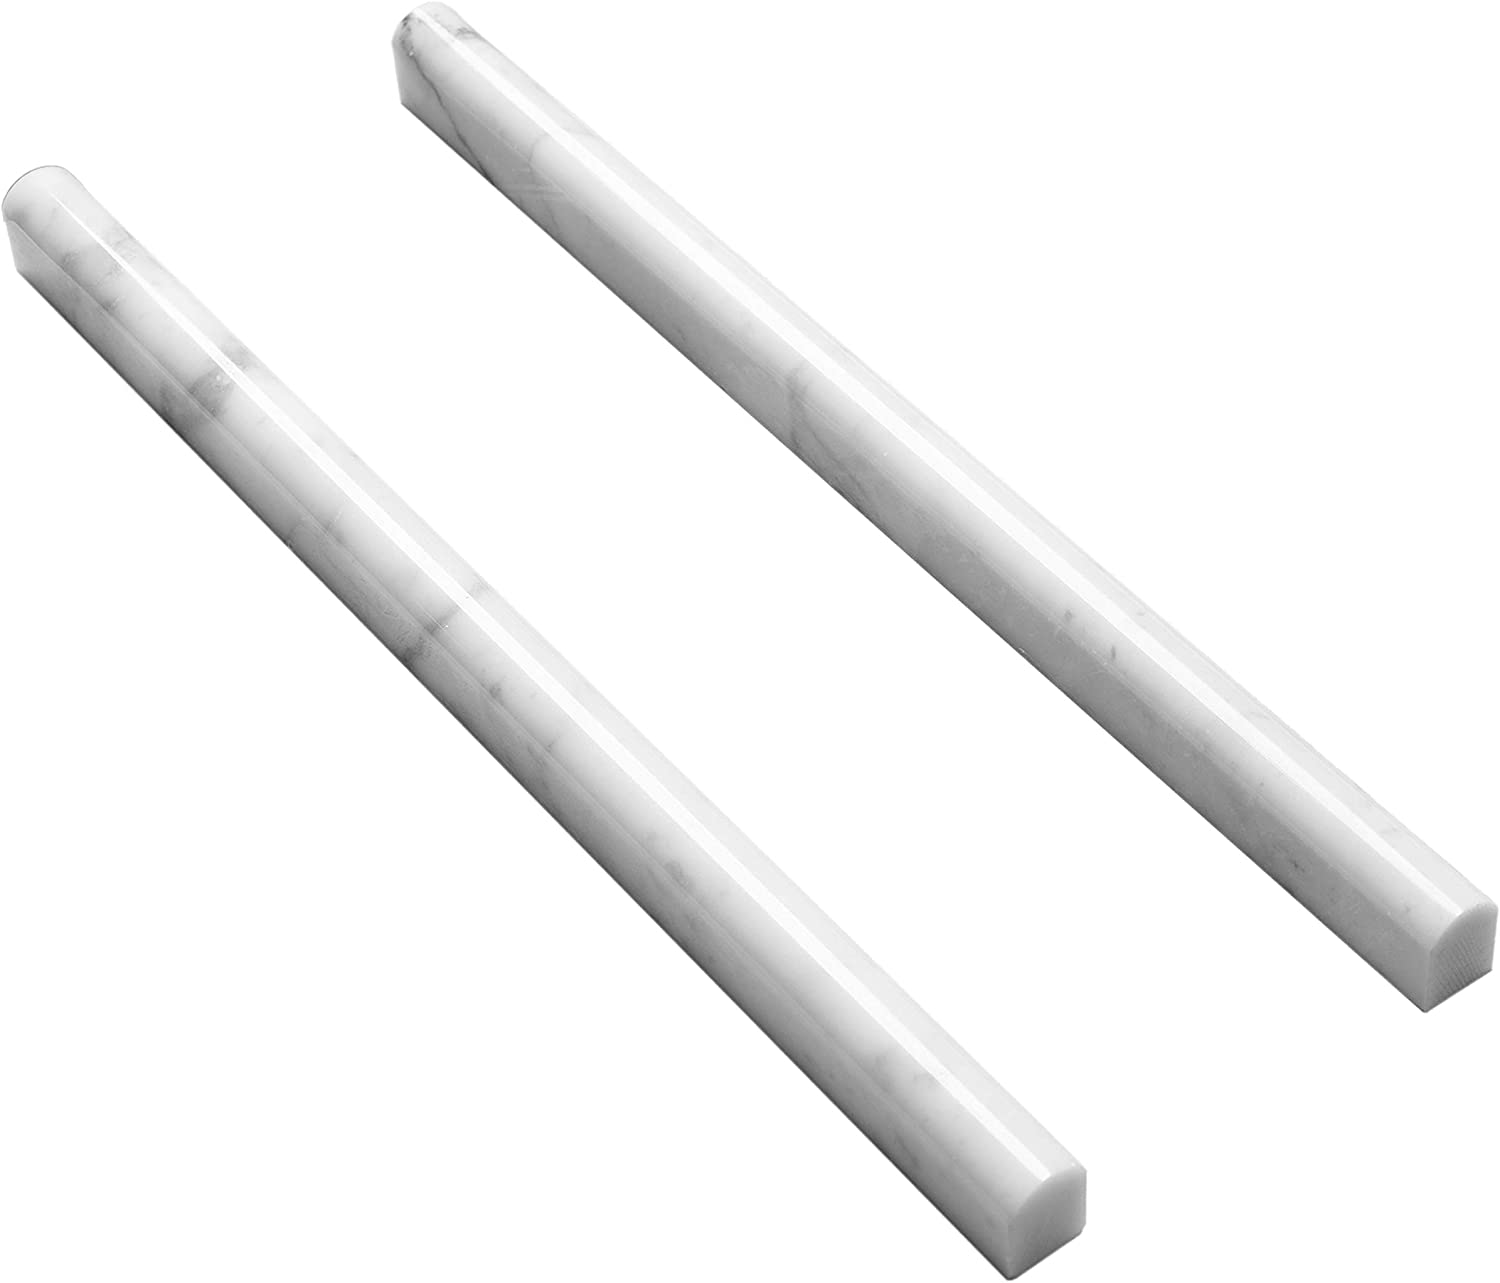 Carrara White 20 Fort Worth Mall service Pack 4.49 pc Liner Pencil 5